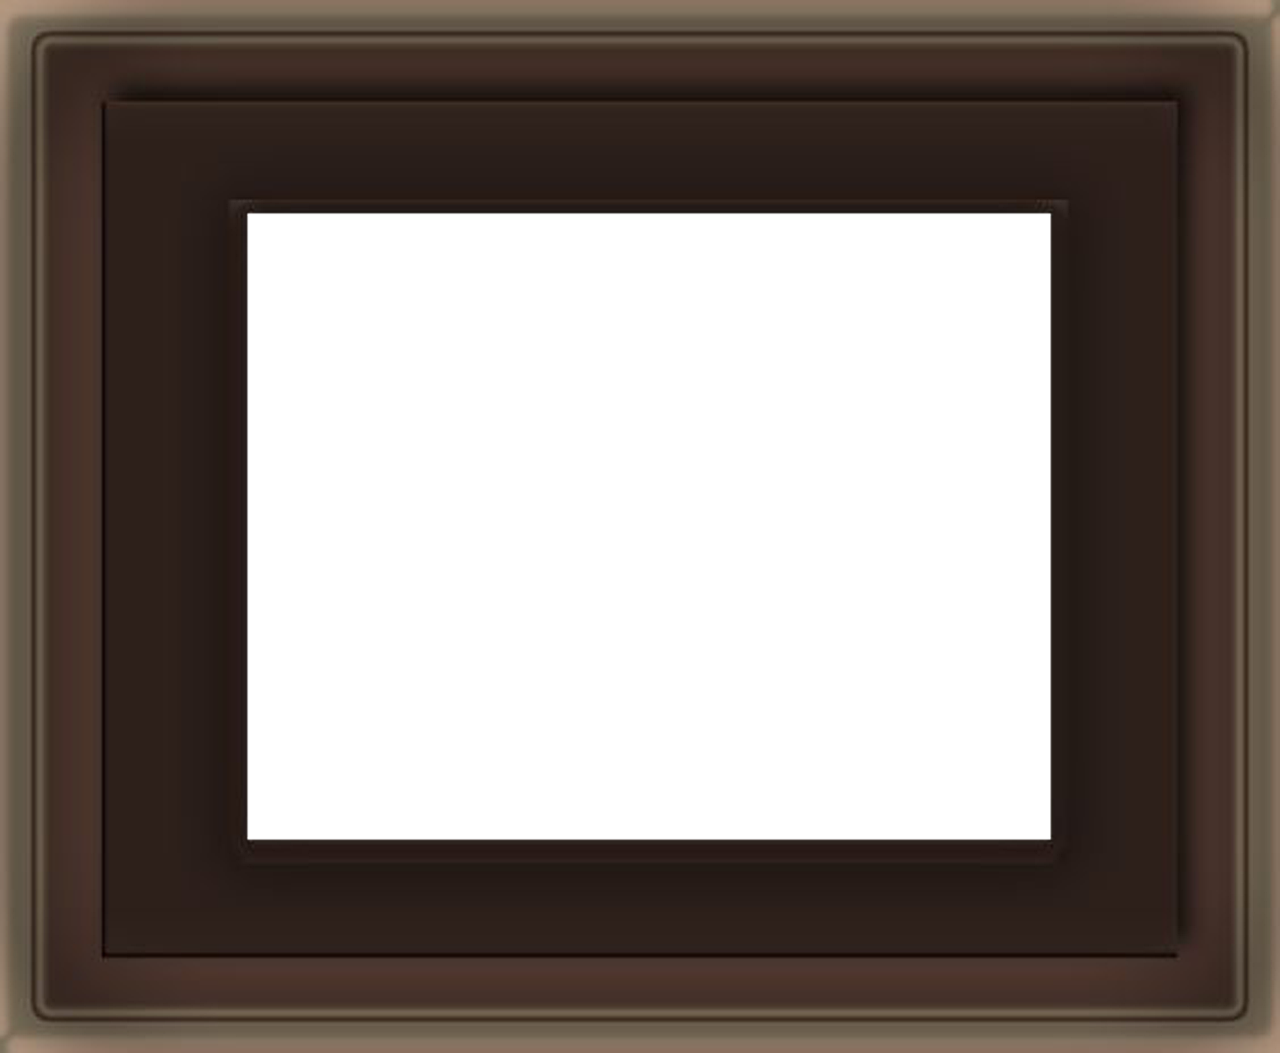 frame png texture frame png pictures frame png marron free photo